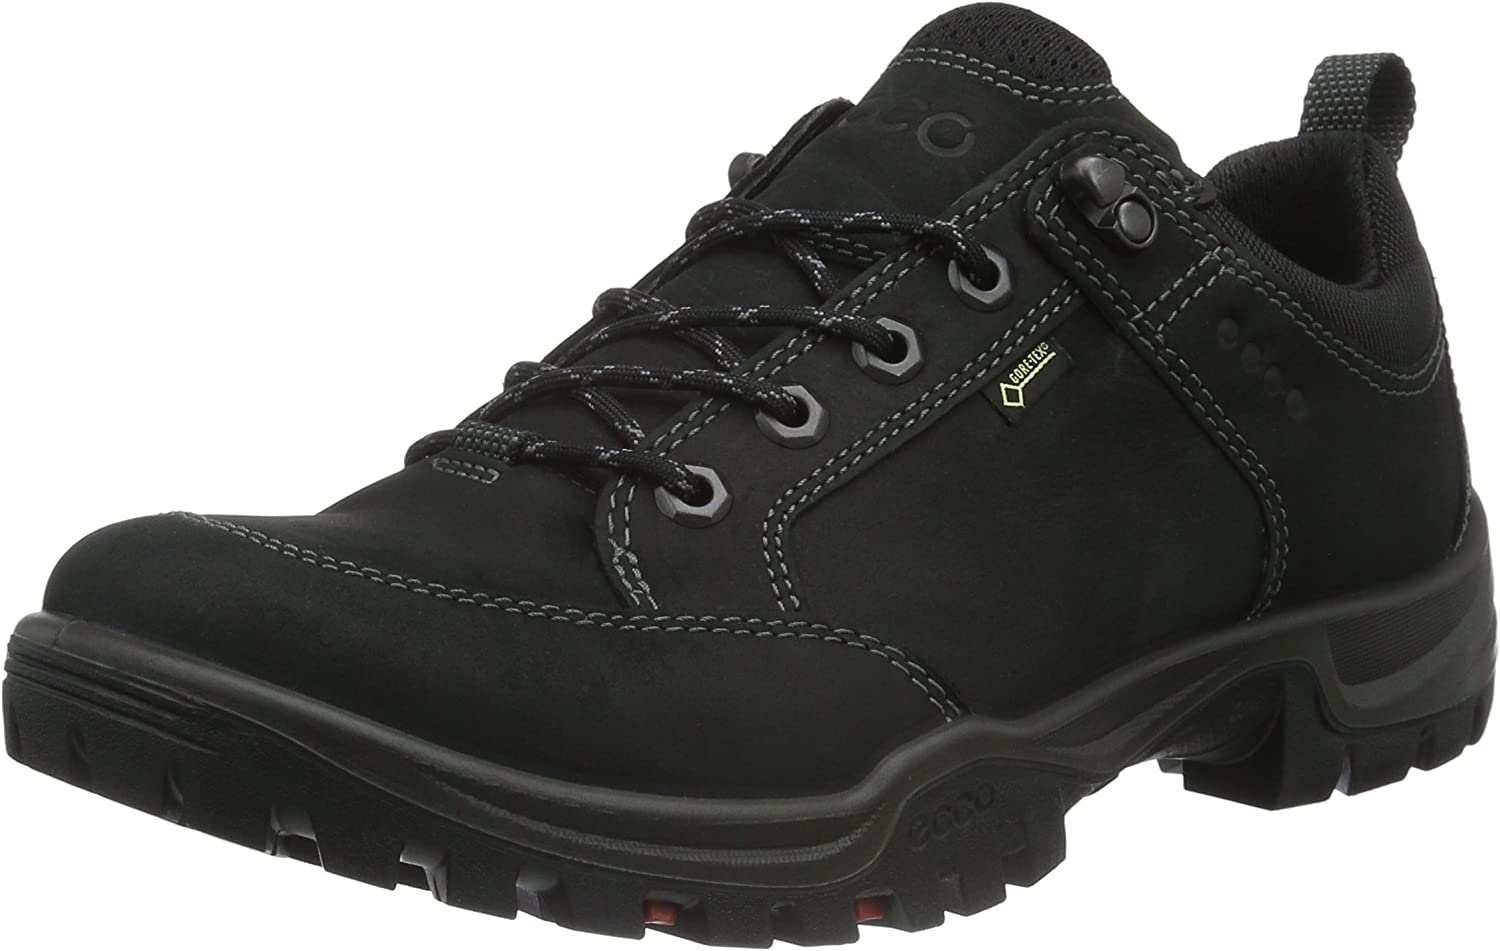 ECCO Men's Expedition Iii Low Gore-tex Hiking Boot shoes